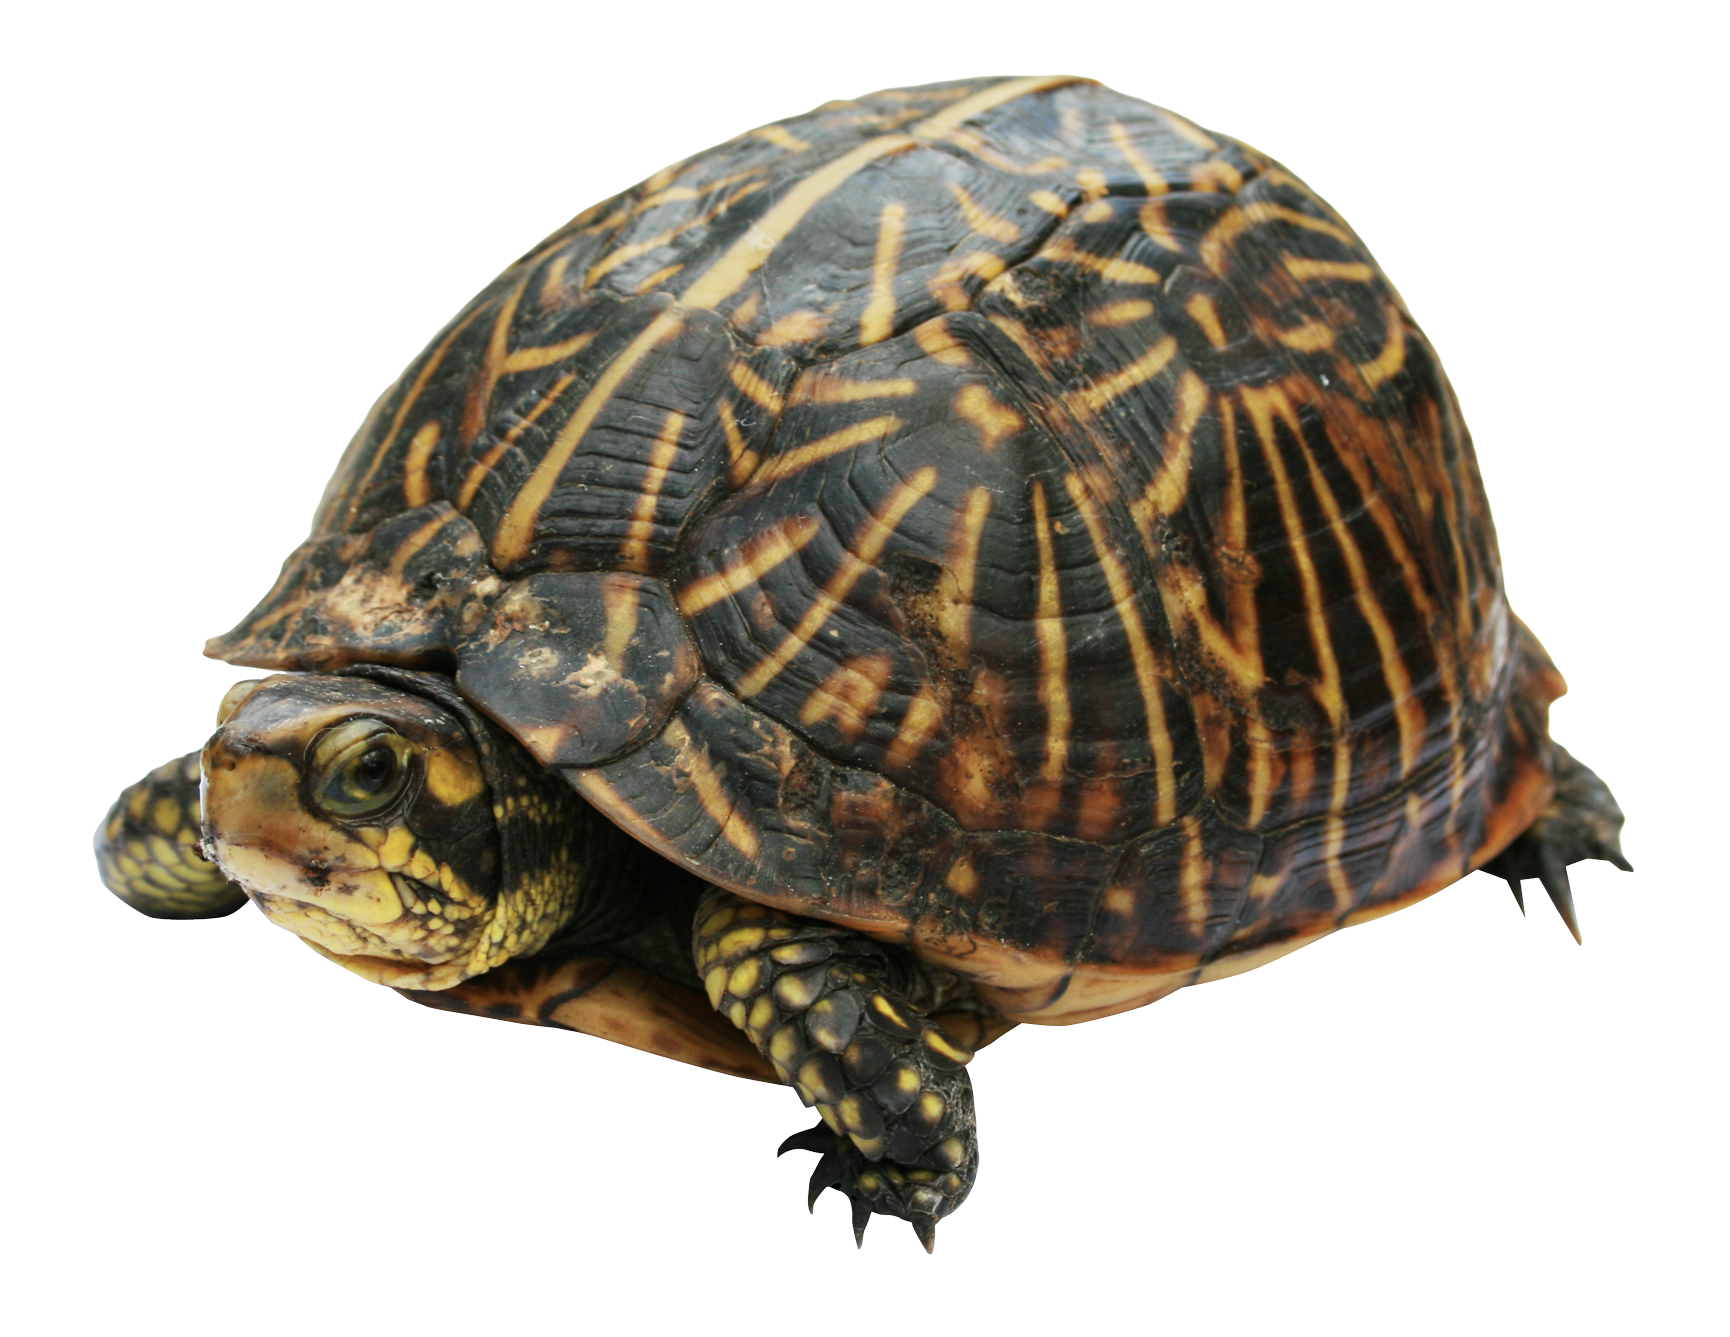 Turtle PNG Image